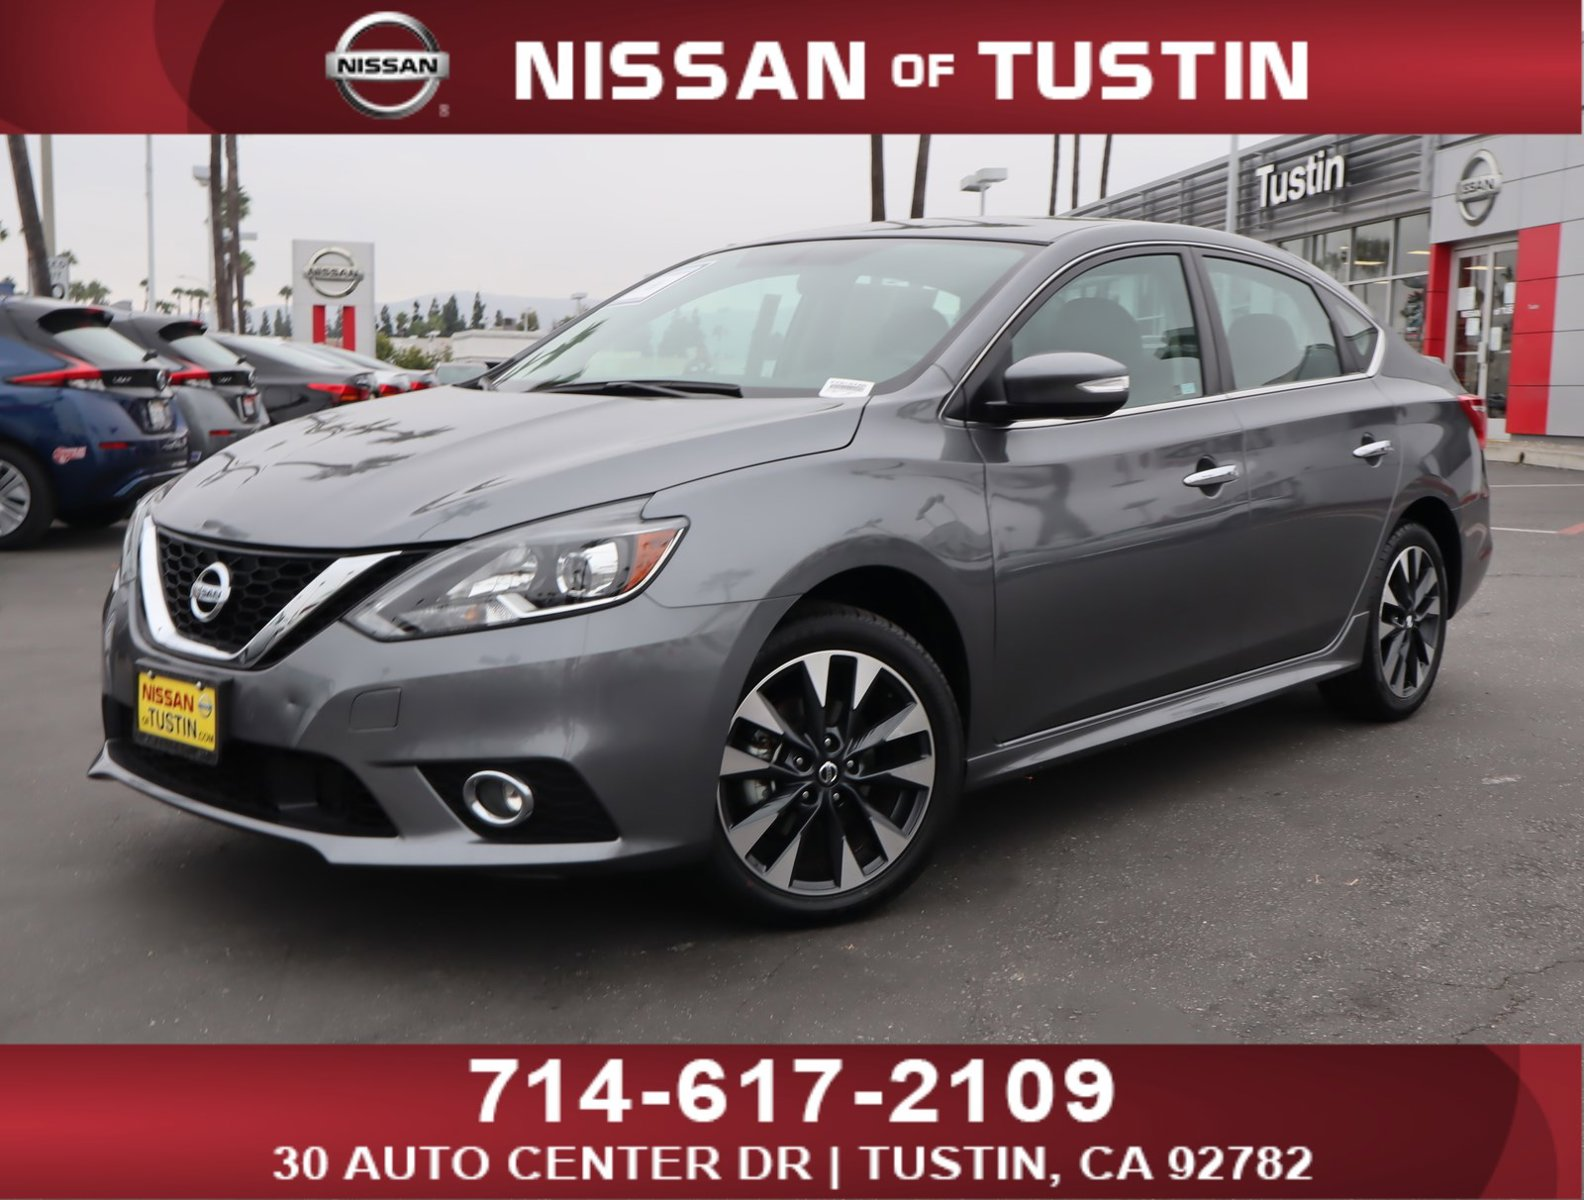 2019 Nissan Sentra SR SR CVT Regular Unleaded I-4 1.8 L/110 [3]